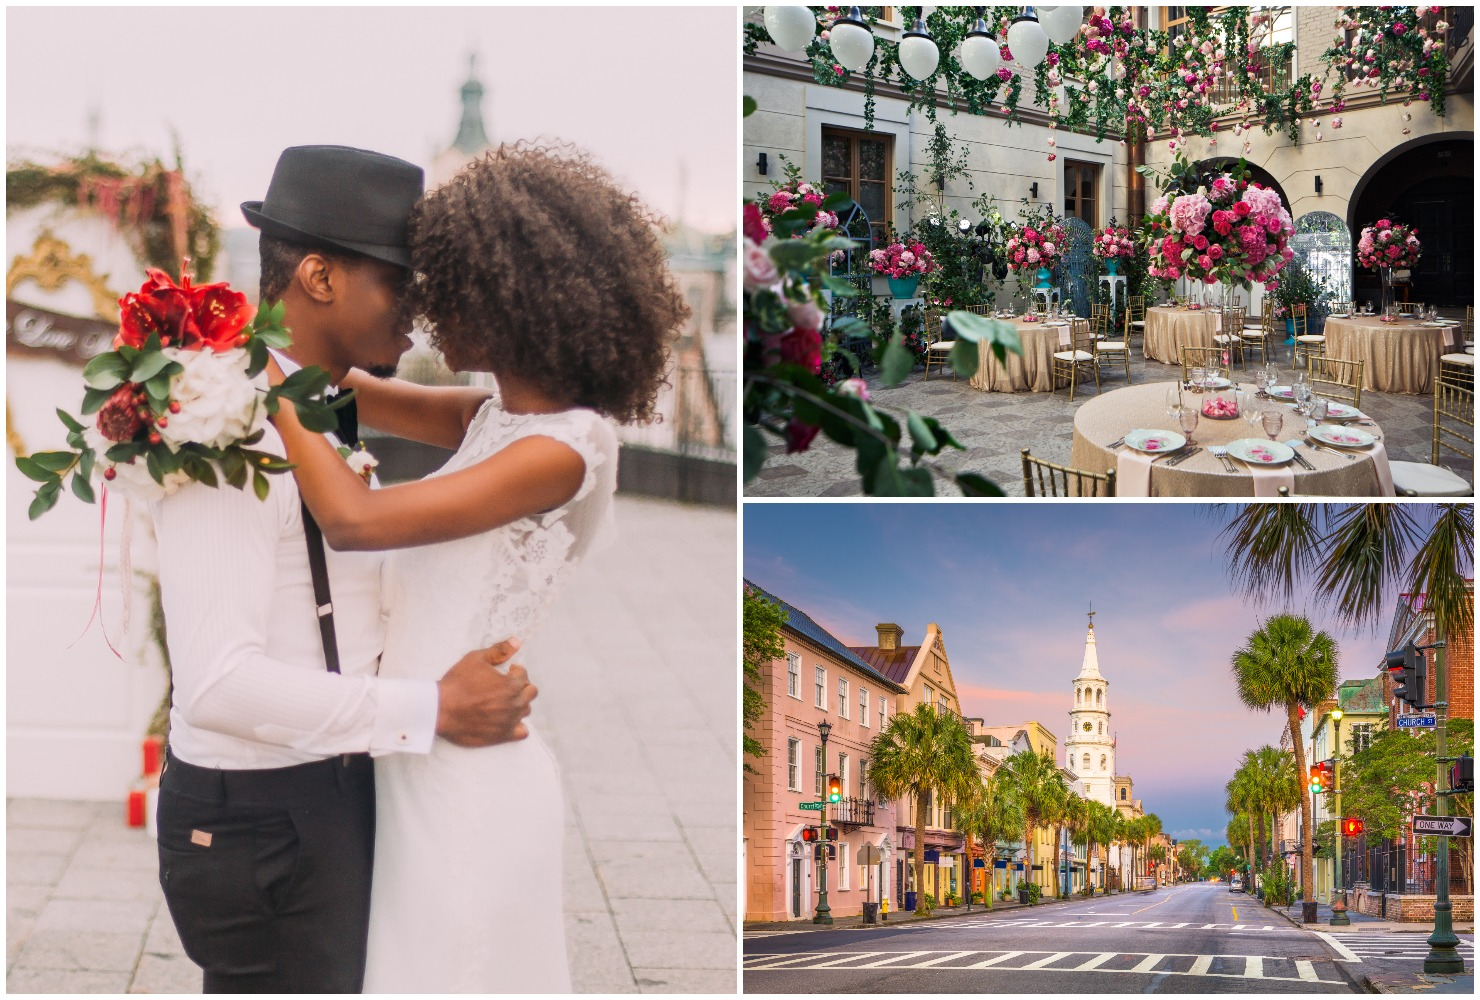 New Orleans destination wedding ideas, wedding couple embracing, New Orleans street, courtyard reception